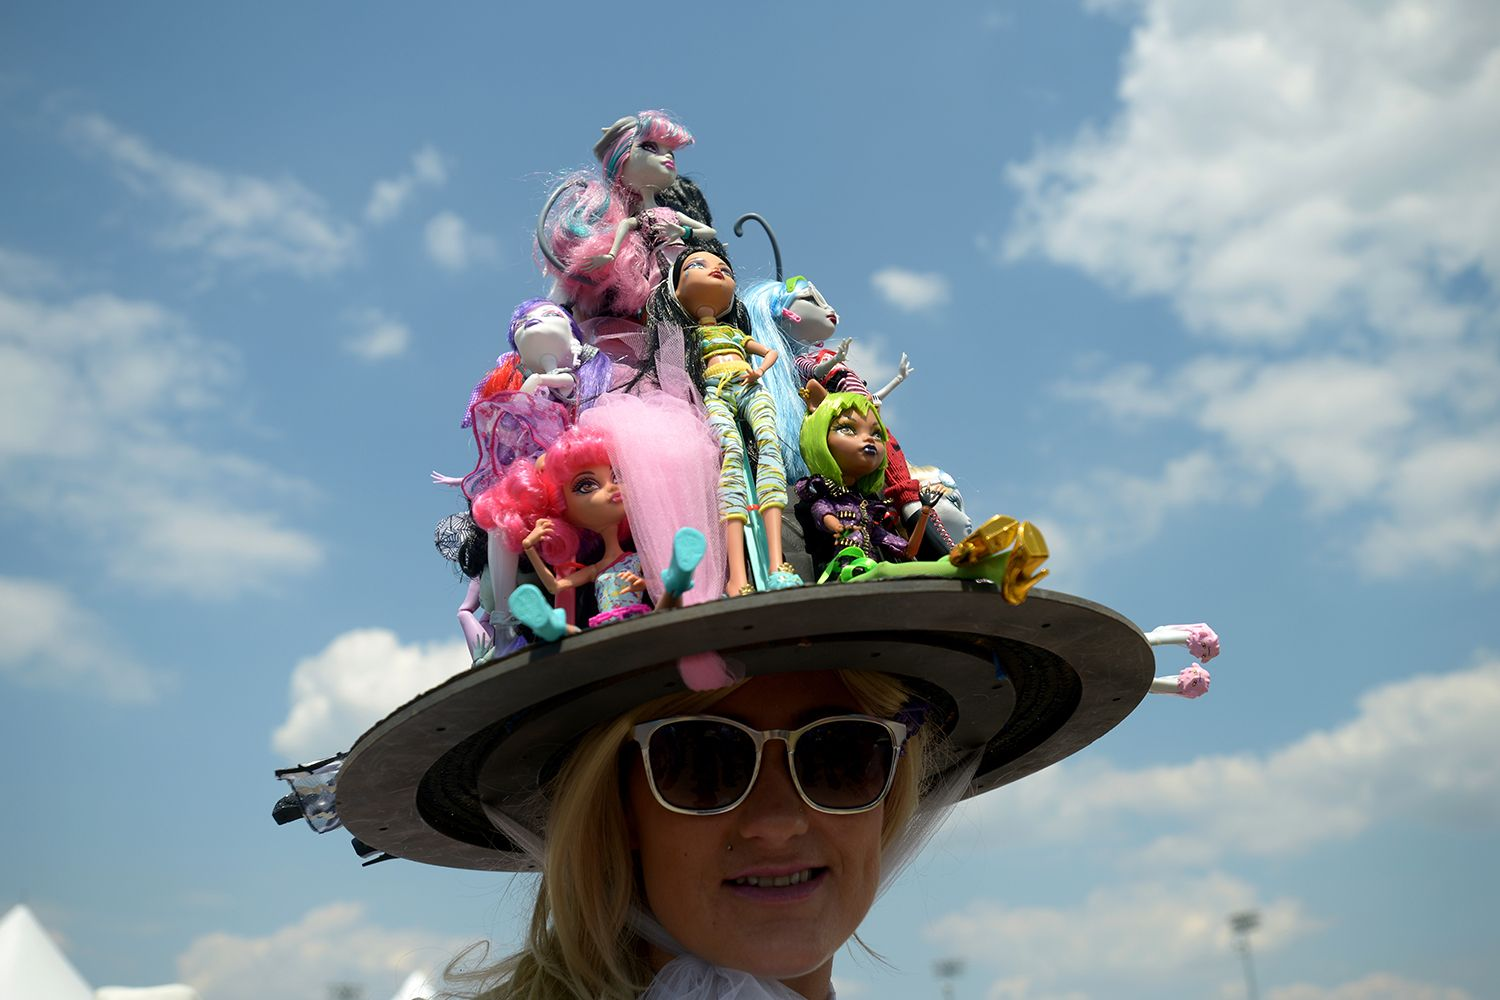 The Craziest Kentucky Derby Hats To Get You Excited For The 2018